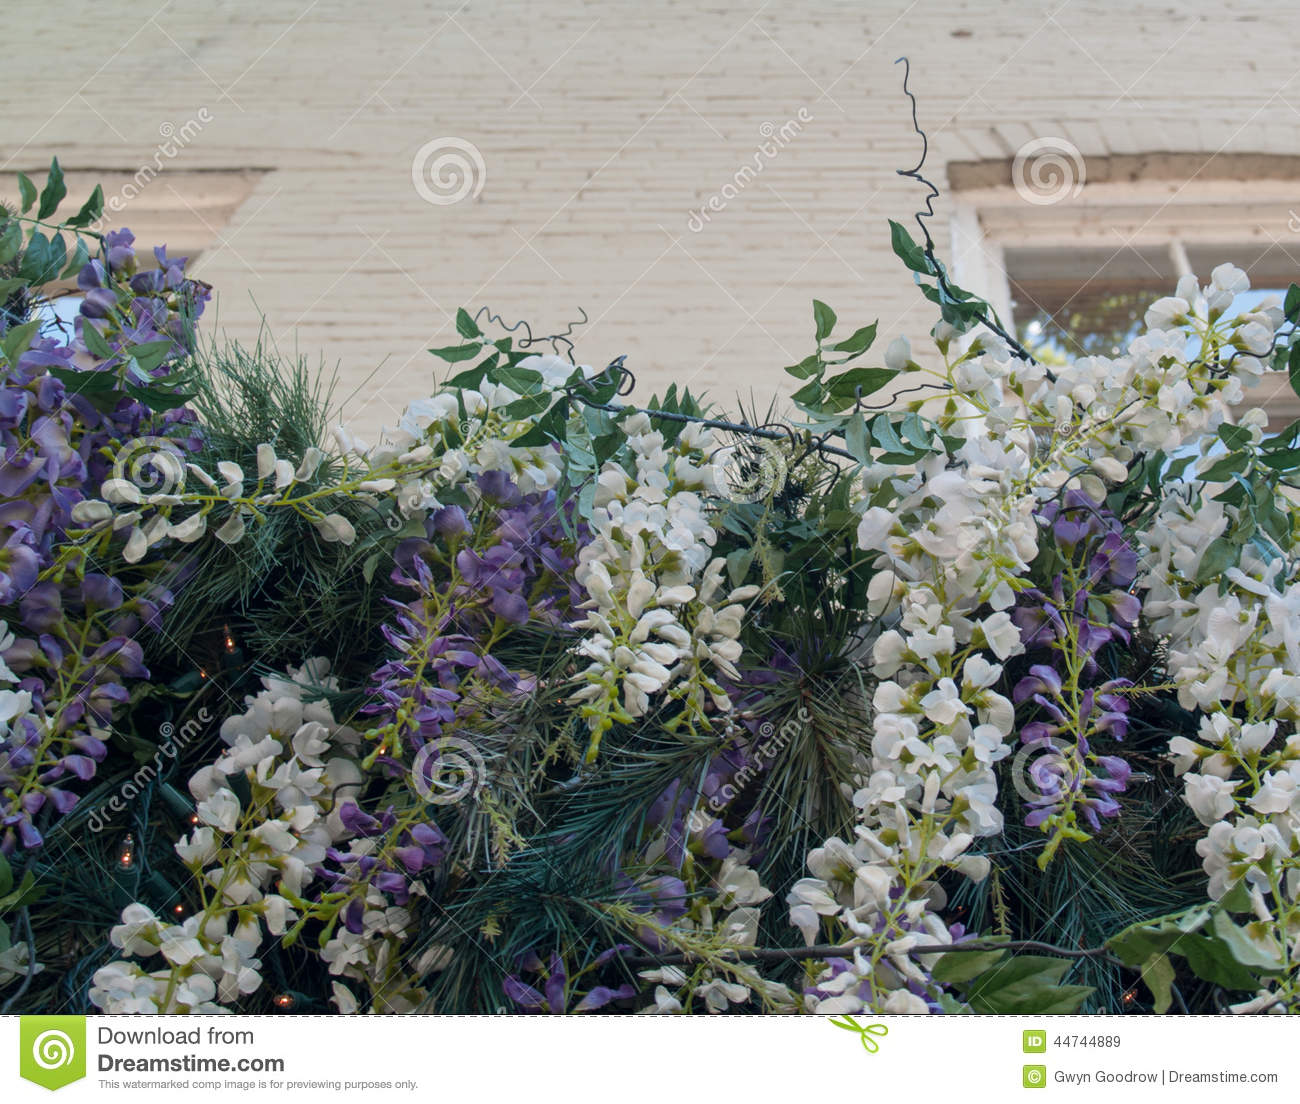 Cascading flowers in front of older brick building stock image royalty free stock photo mightylinksfo